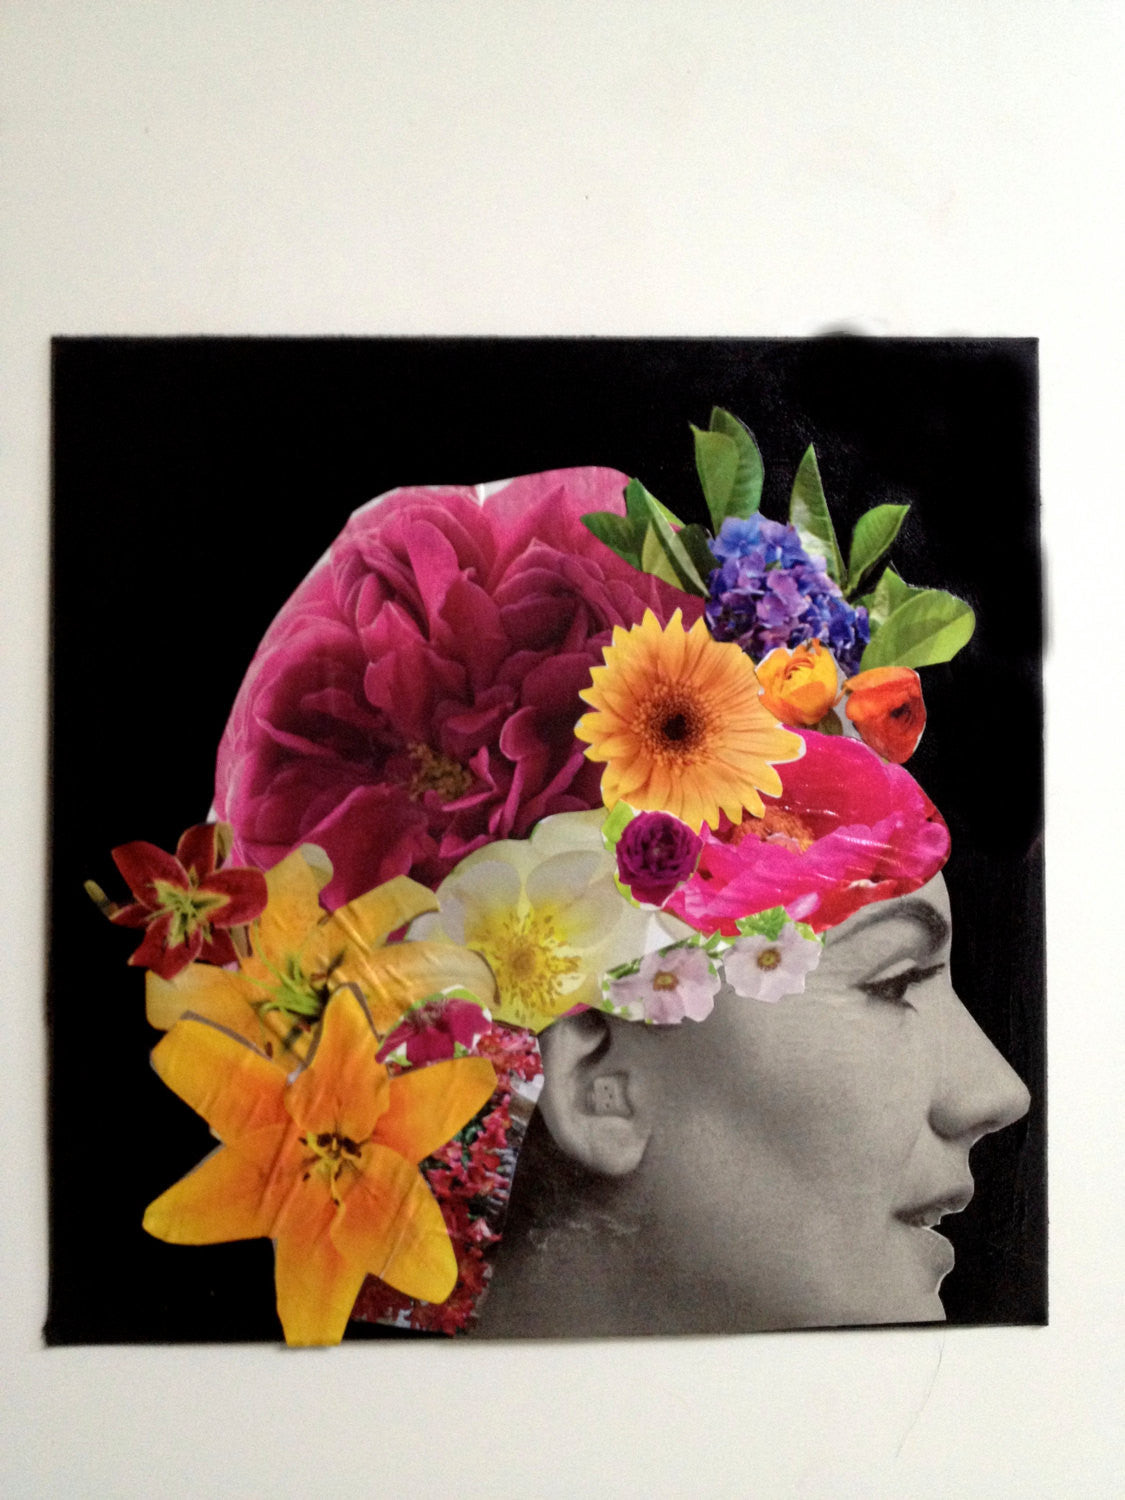 Original Colorful Collage, Woman With Flowers in Hair. Black and White Vintage Model with Colorful Floral Collage Headpiece. OOAK artwork